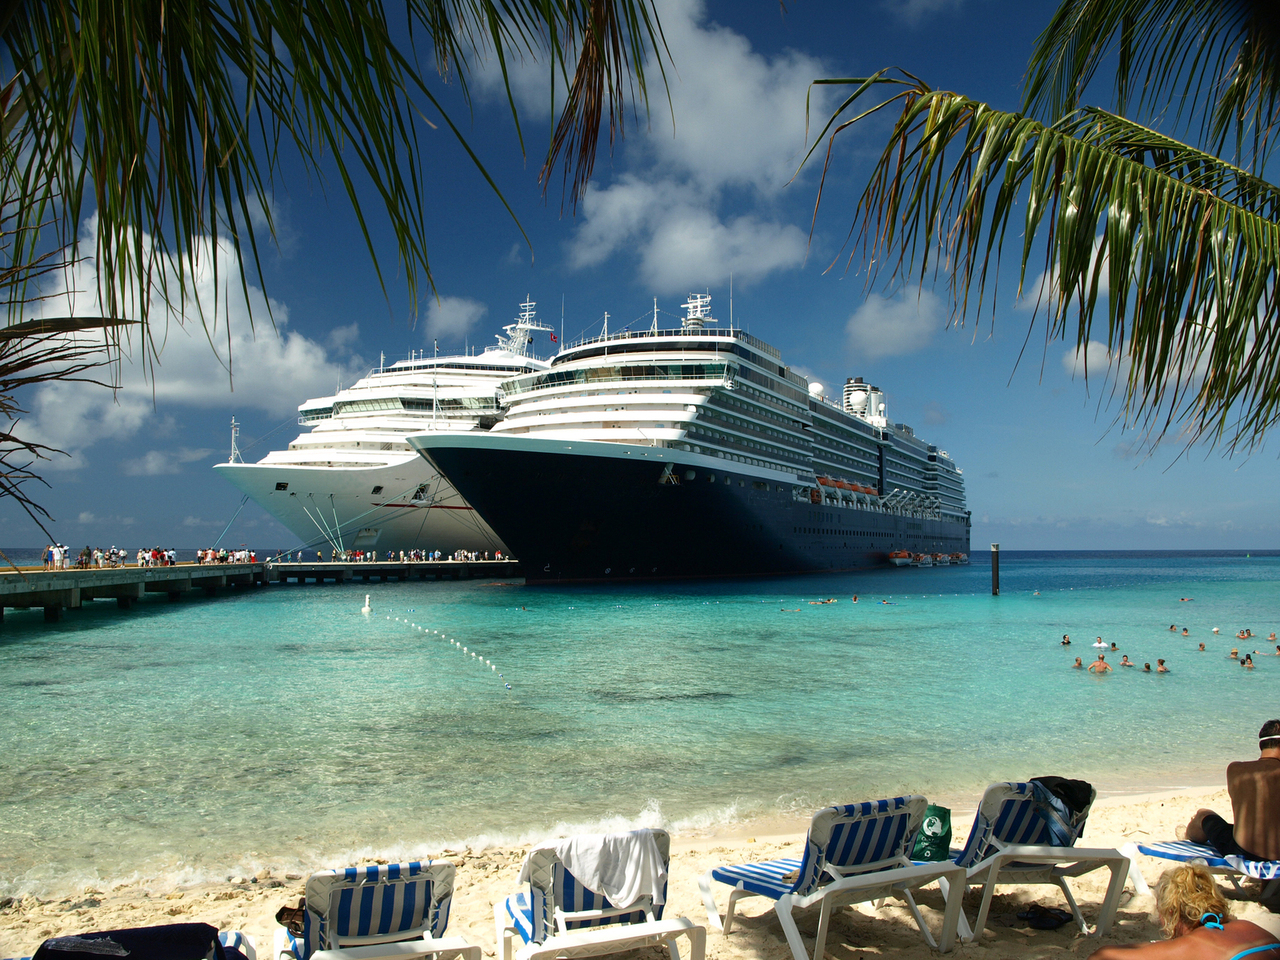 Cruceros de Lujo / Luxury Cruises